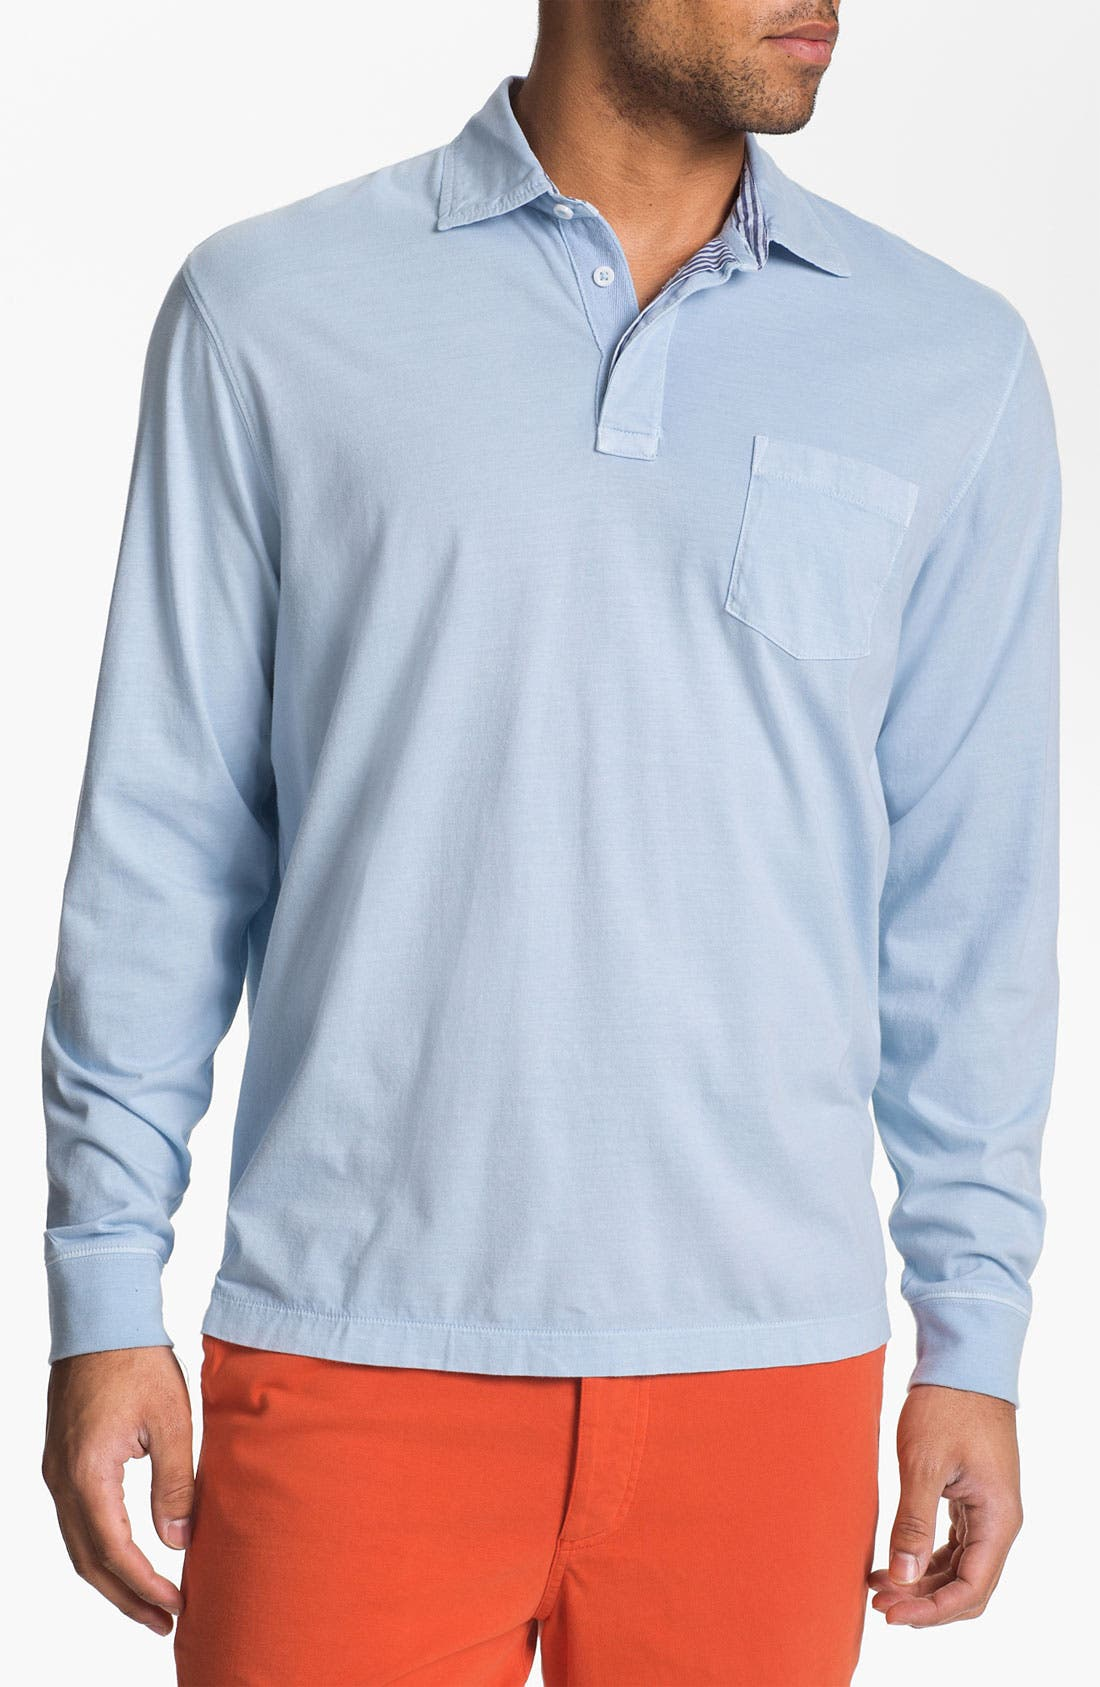 Main Image - Vineyard Vines 'Markers' Regular Fit Polo